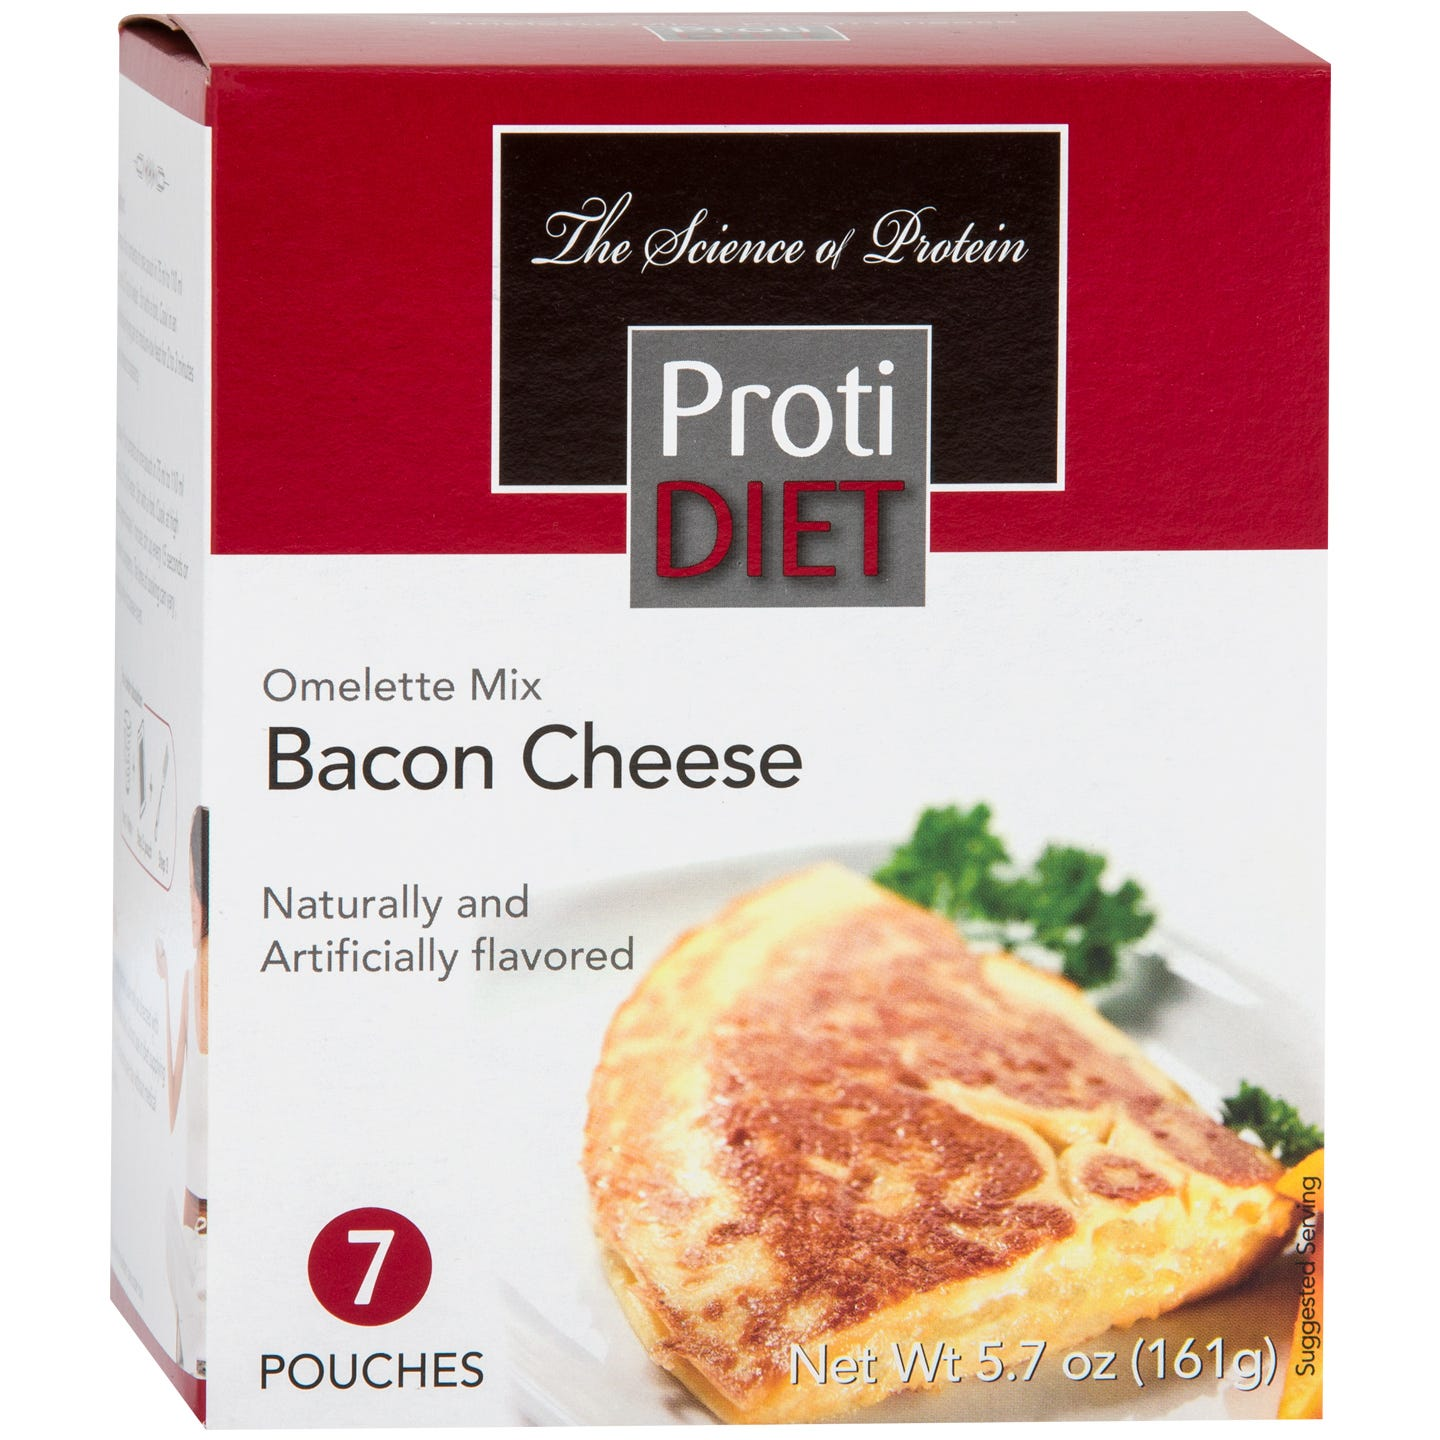 Image of Bacon & Cheese Omelette Mix (7 ct) - ProtiDiet